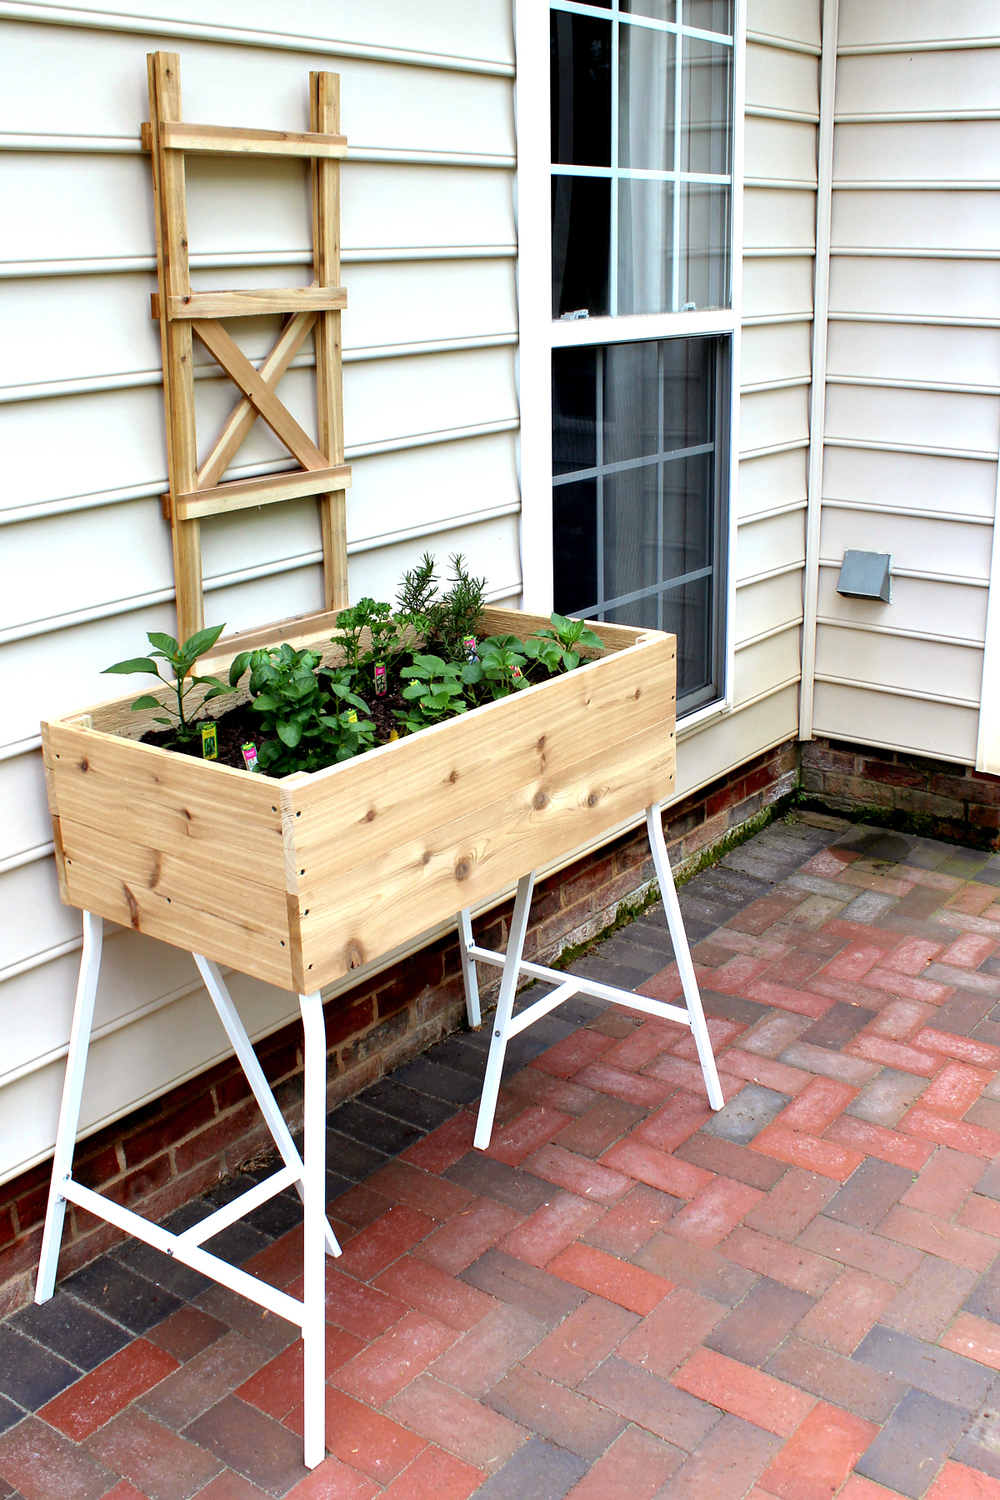 how to build an elevated container garden with cedar and IKEA trestle legs #ikeahack